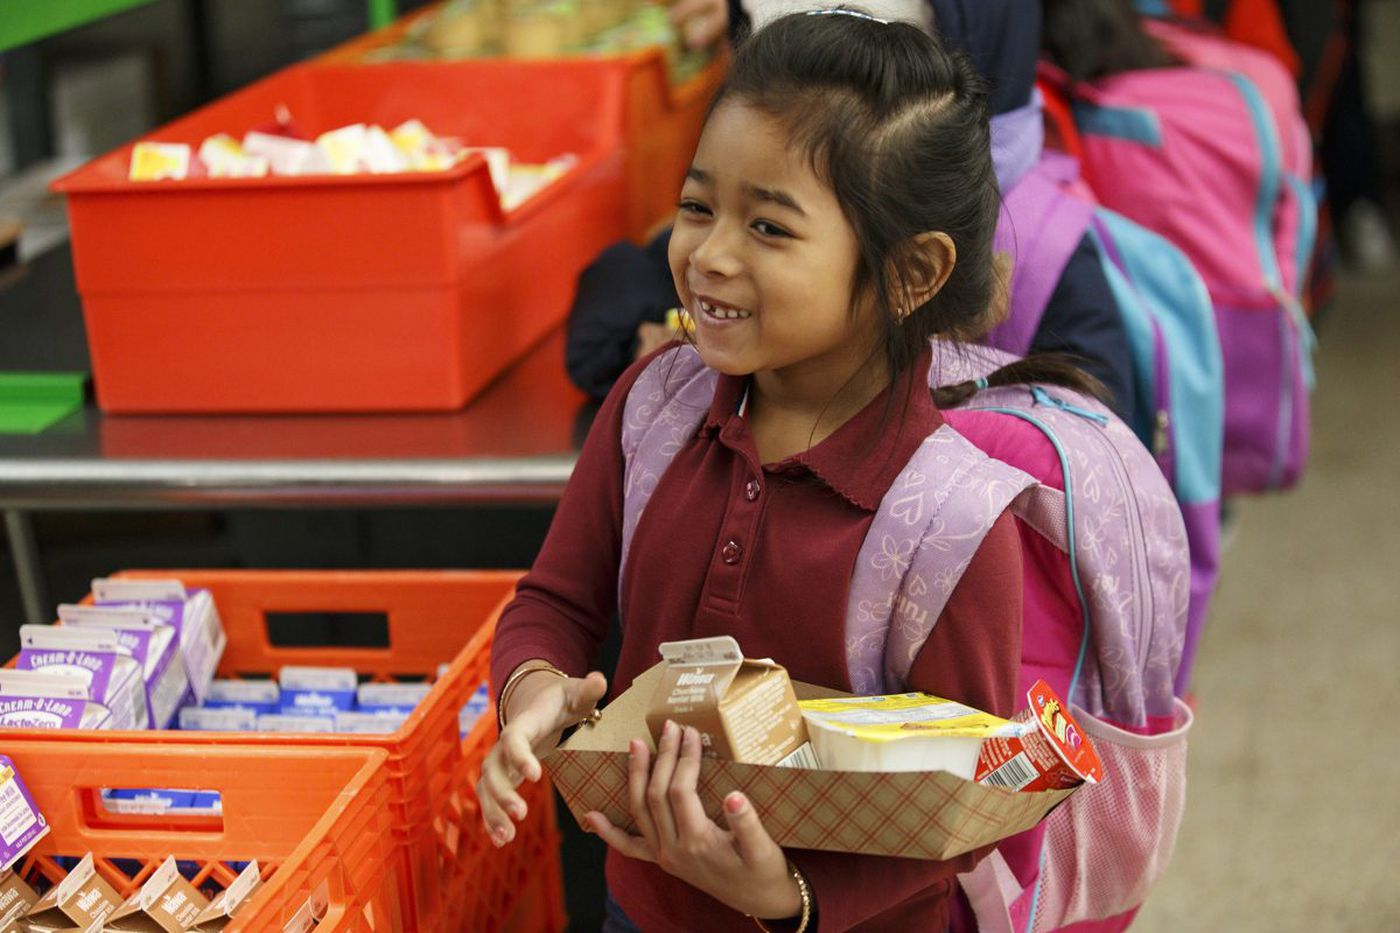 If more Philly kids eat free breakfast, will achievement rise? This school says yes.